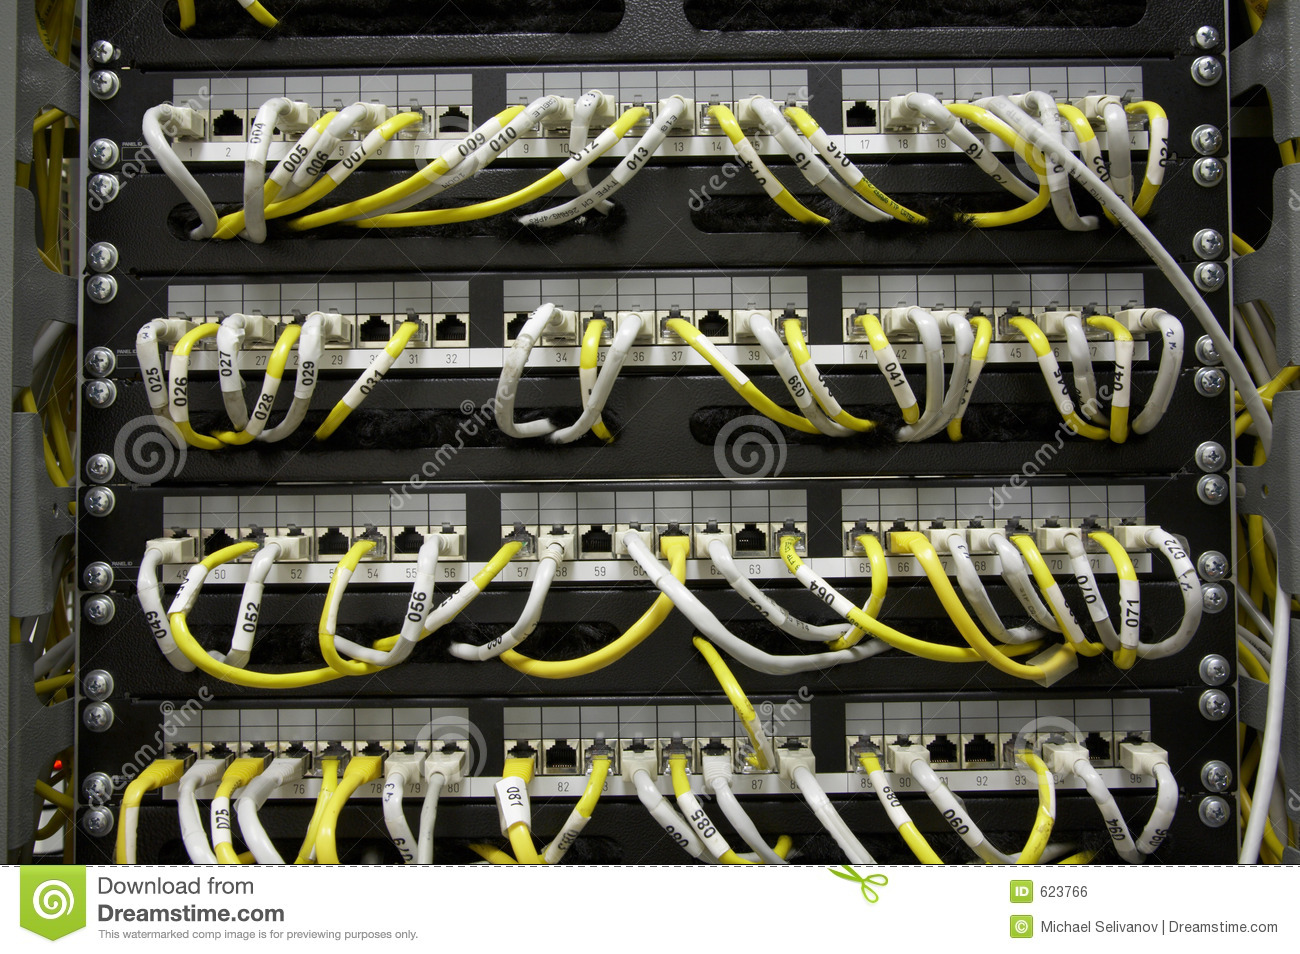 2u Blank Patch Panel 24 Port in addition Unity 5 likewise 3ft Rg58u Coaxial Patch Cable Bnc 2 likewise Spqr Total War moreover 275157 Wts Clayton Dvd 7 Headrest Print. on audio patch